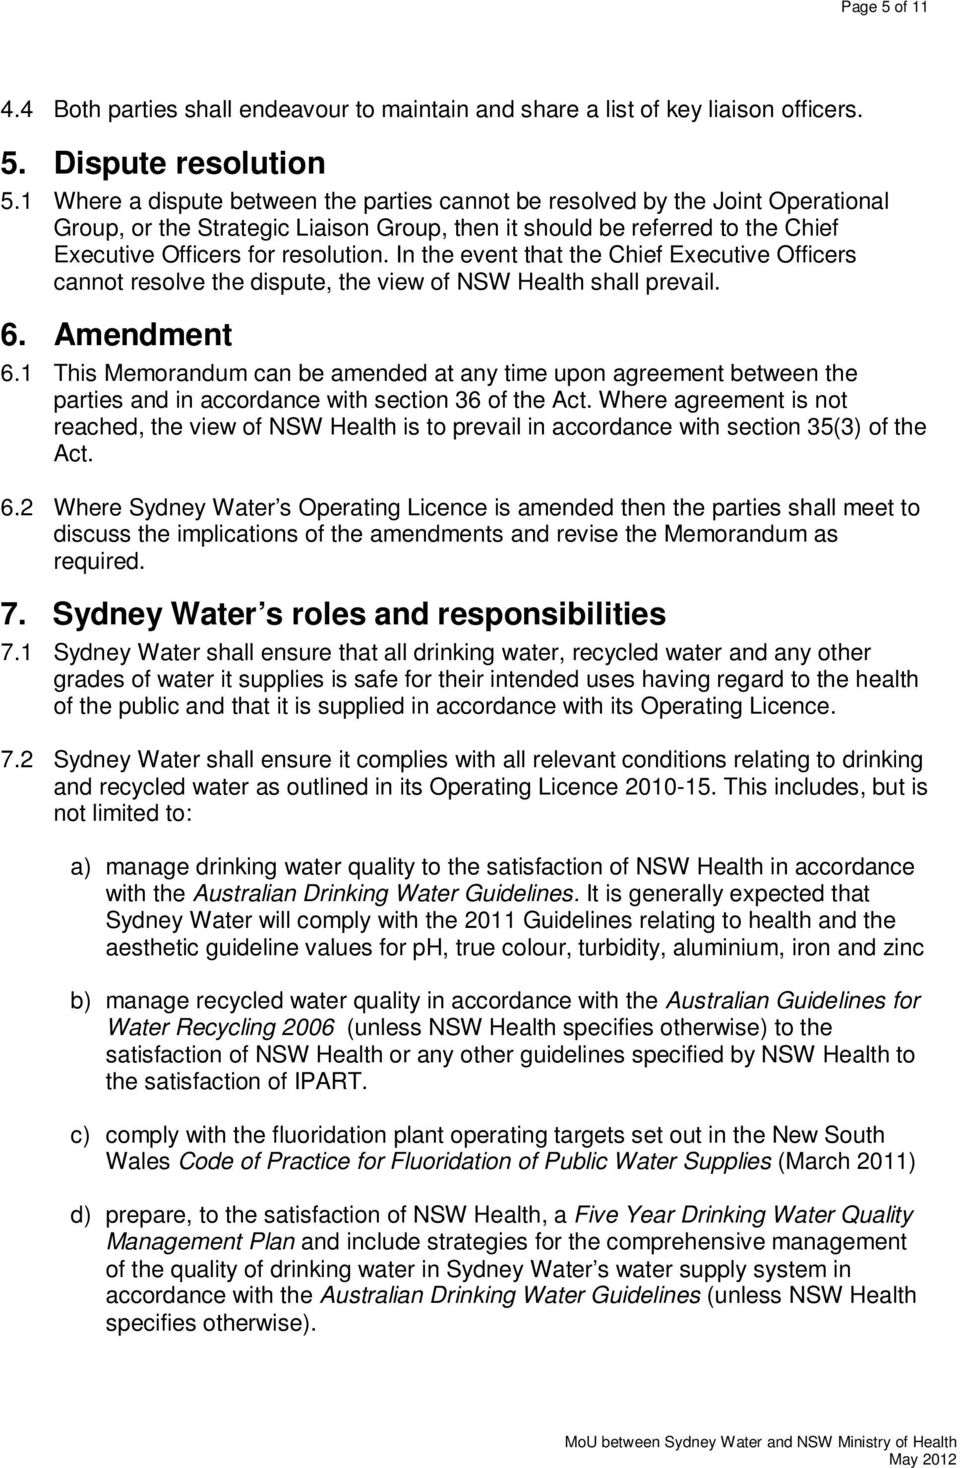 In the event that the Chief Executive Officers cannot resolve the dispute, the view of NSW Health shall prevail. 6. Amendment 6.